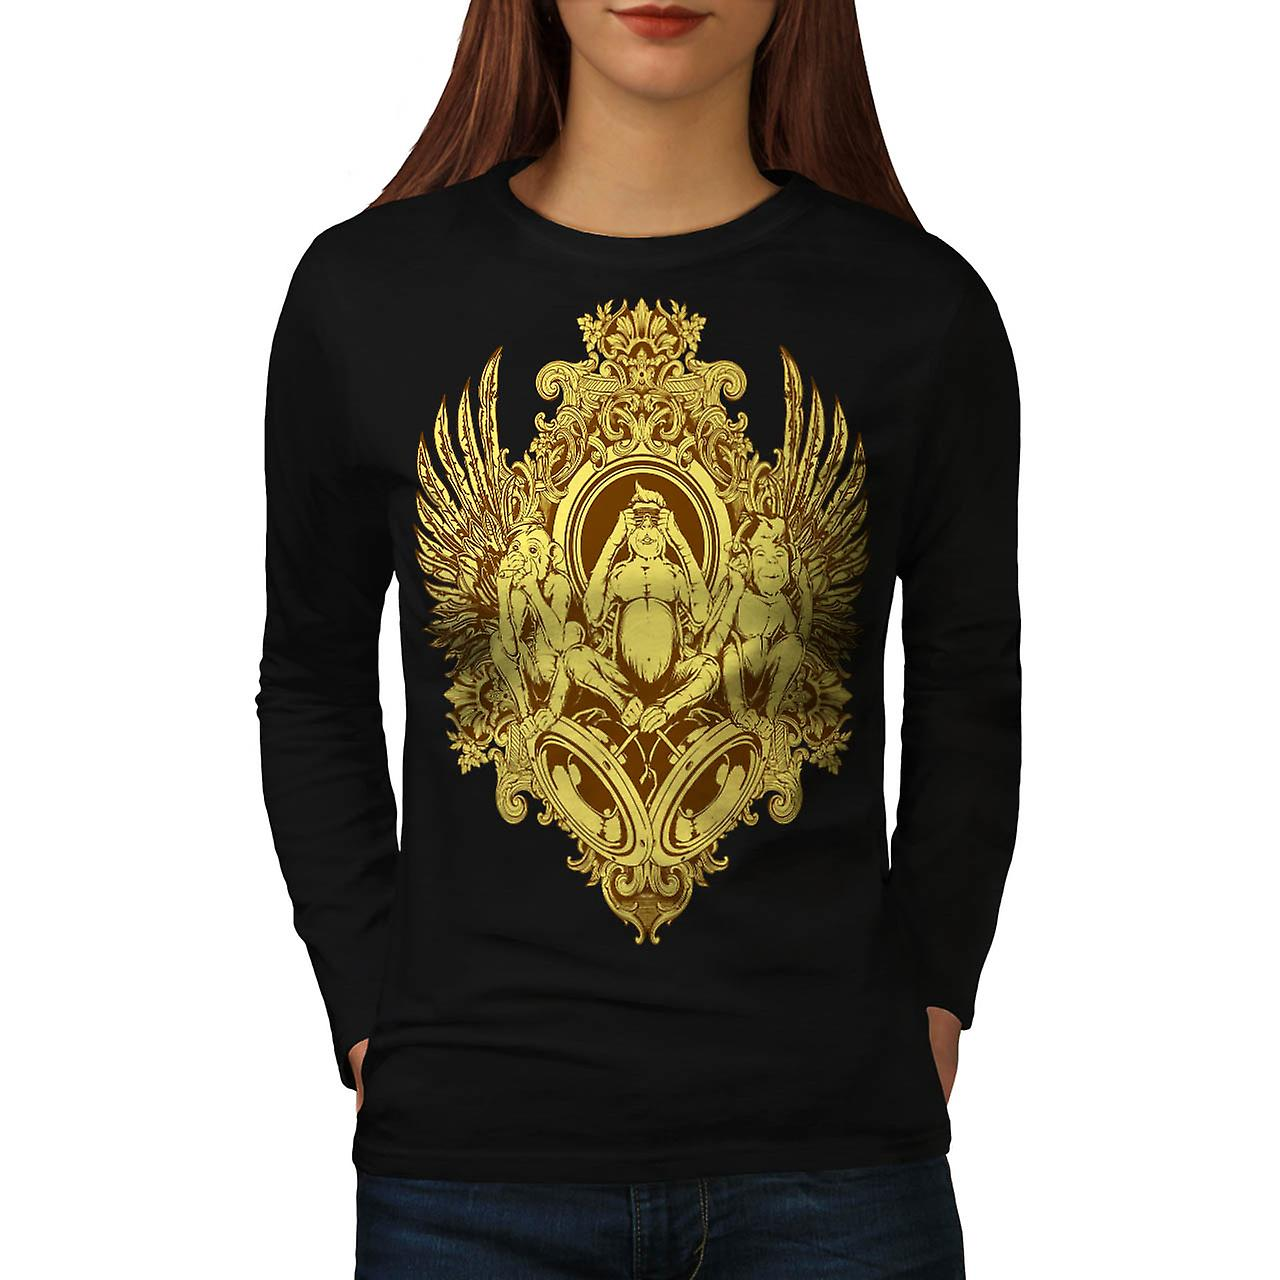 Evil Monkey Thrones 3 Wise Chimp Women Black Long Sleeve T-shirt | Wellcoda